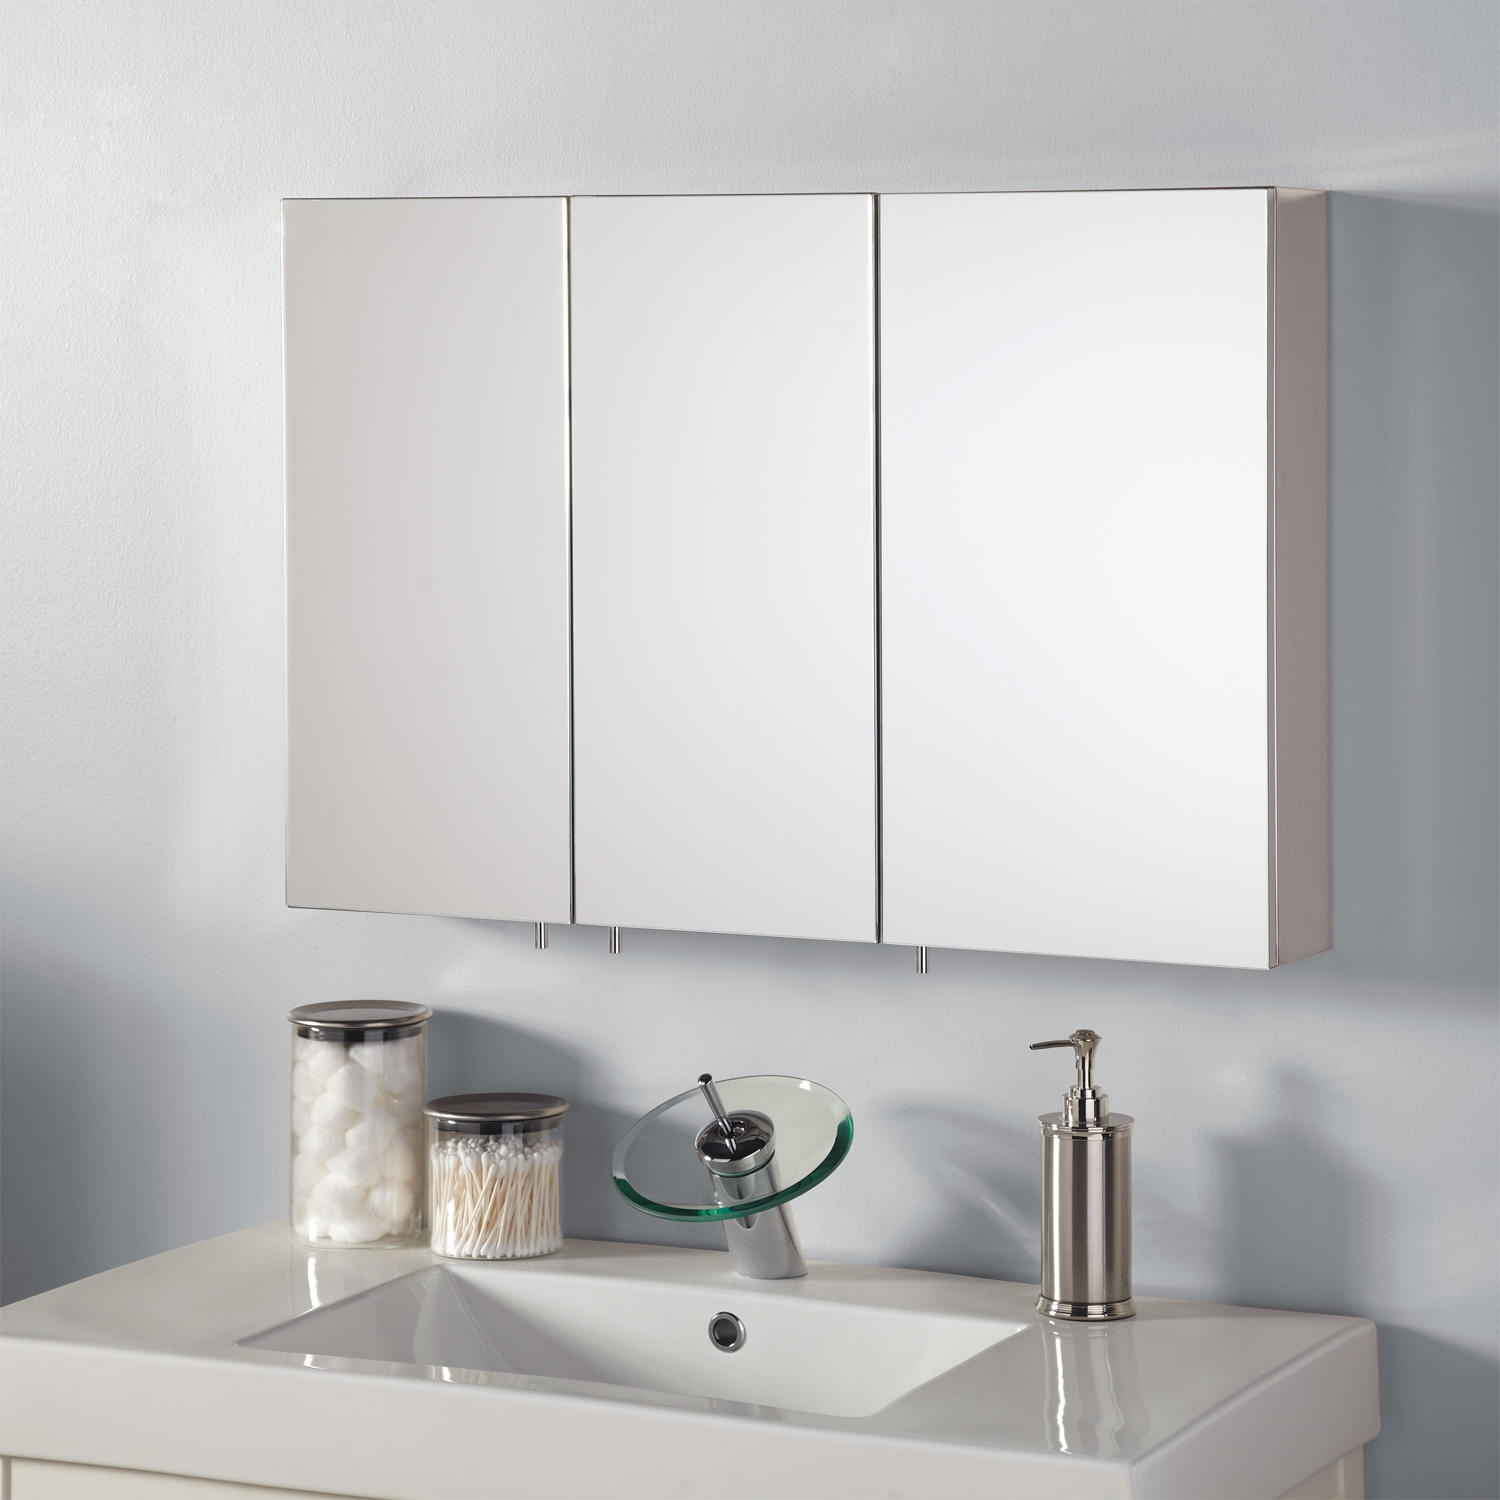 Gedy Stainless Steel Bathroom Cabinet With Sliding Mirror Door